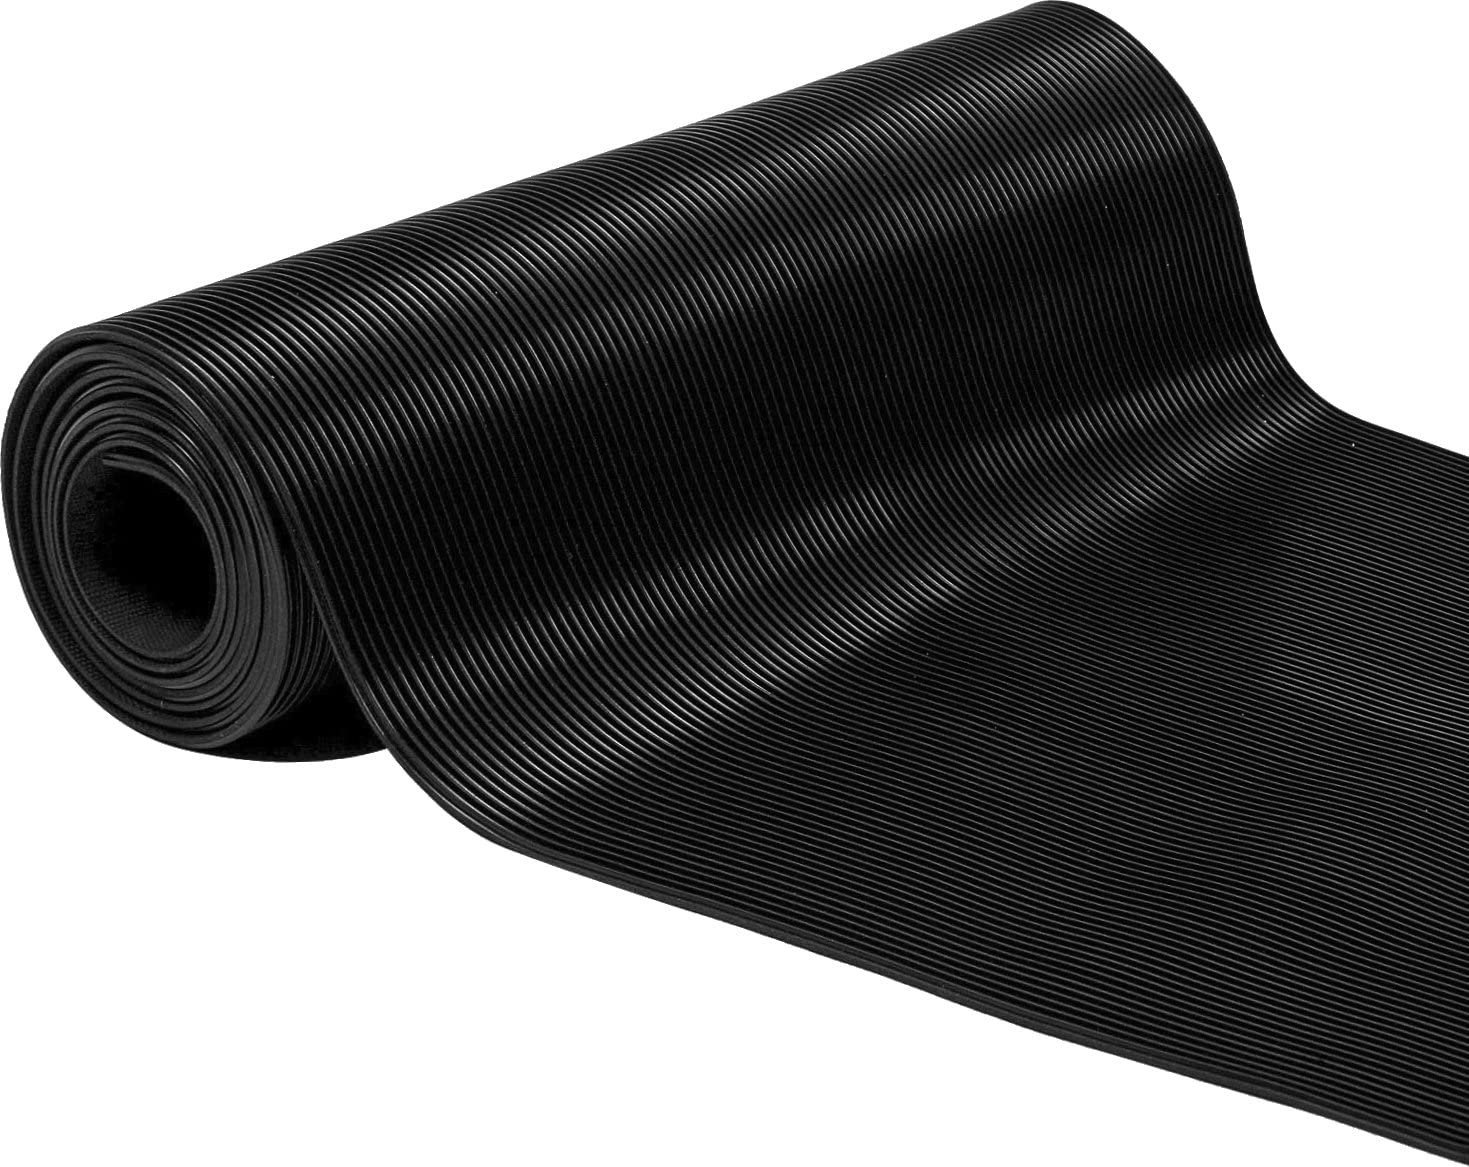 Herco 2 x 5 All Purpose 1 8 Corrugated Rubber Mat – Black